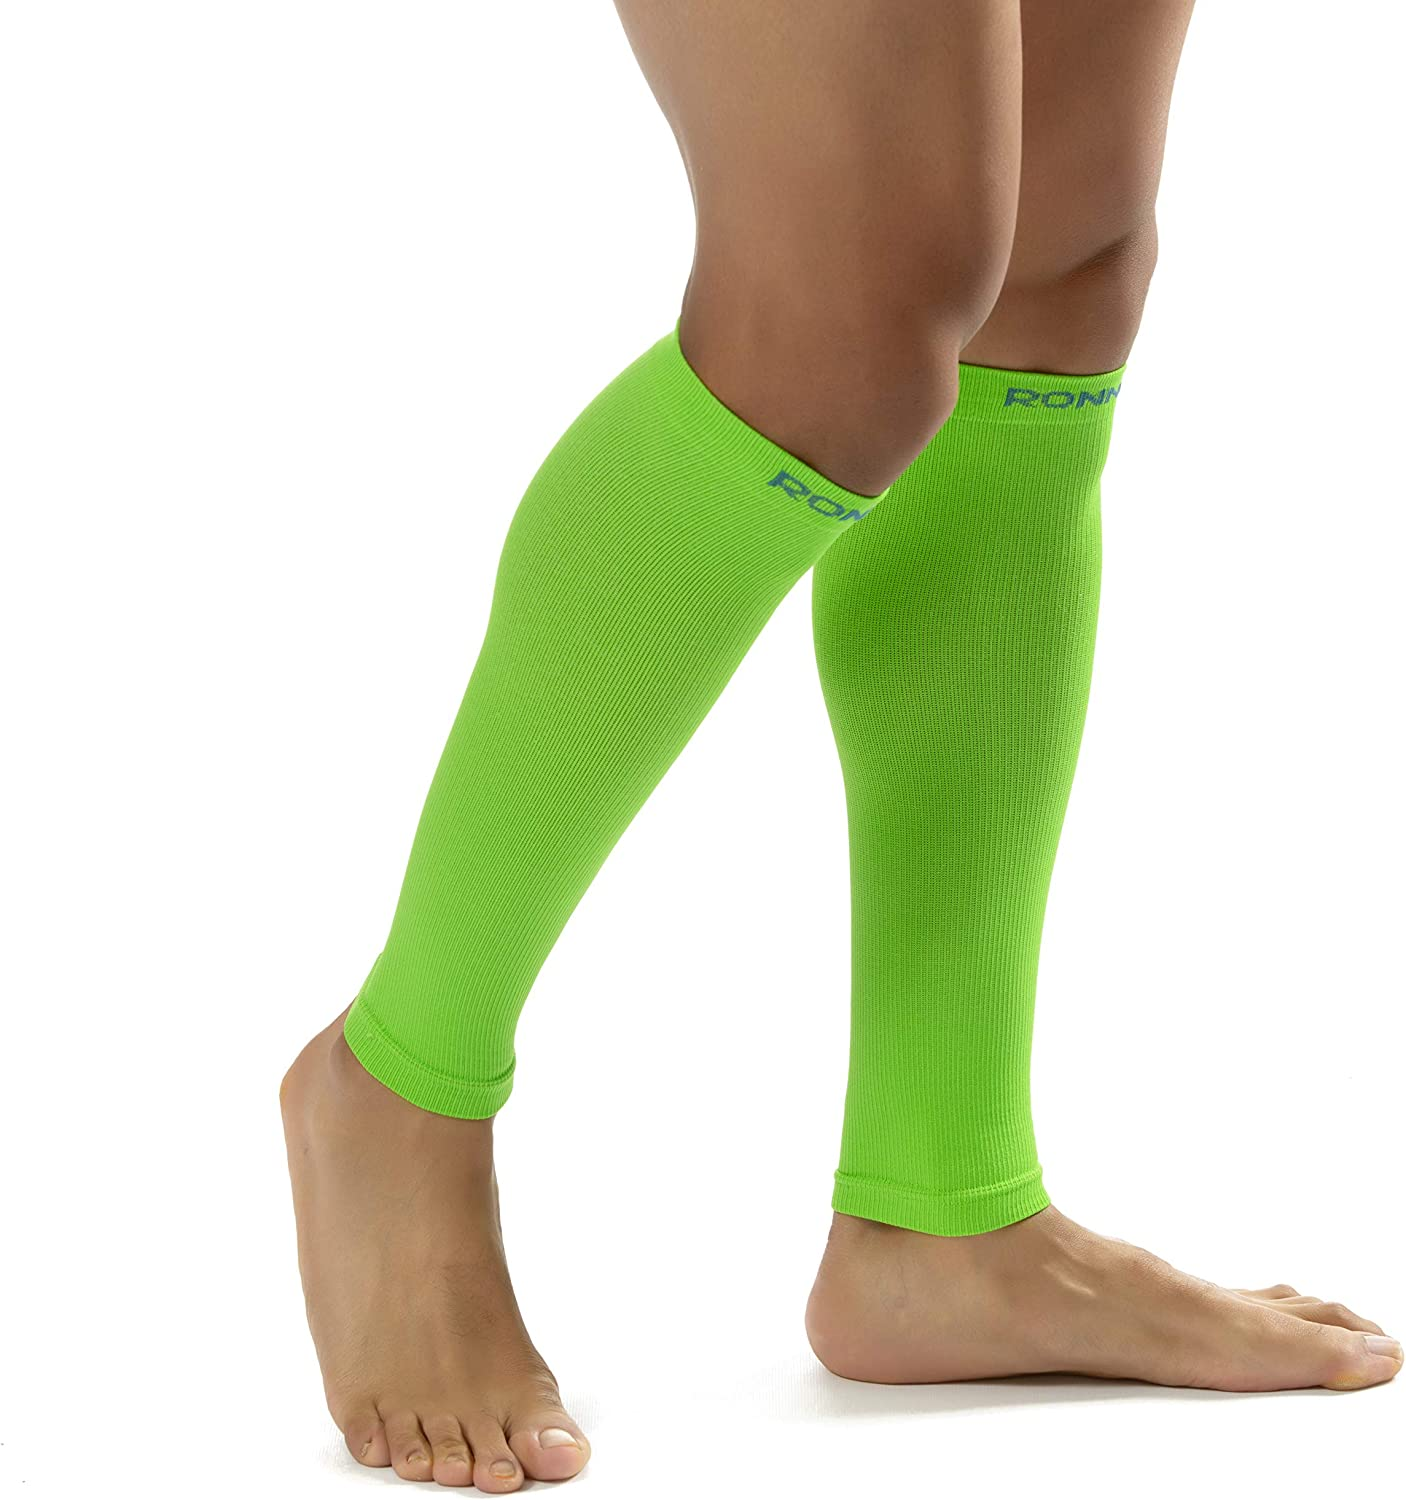 Ronnox Womens 1-Pairs Bright Colored Calf Compression Tube Sleeves 16-20 mmHg // 12-14 mmHg Great for Athletic /& Medical Use